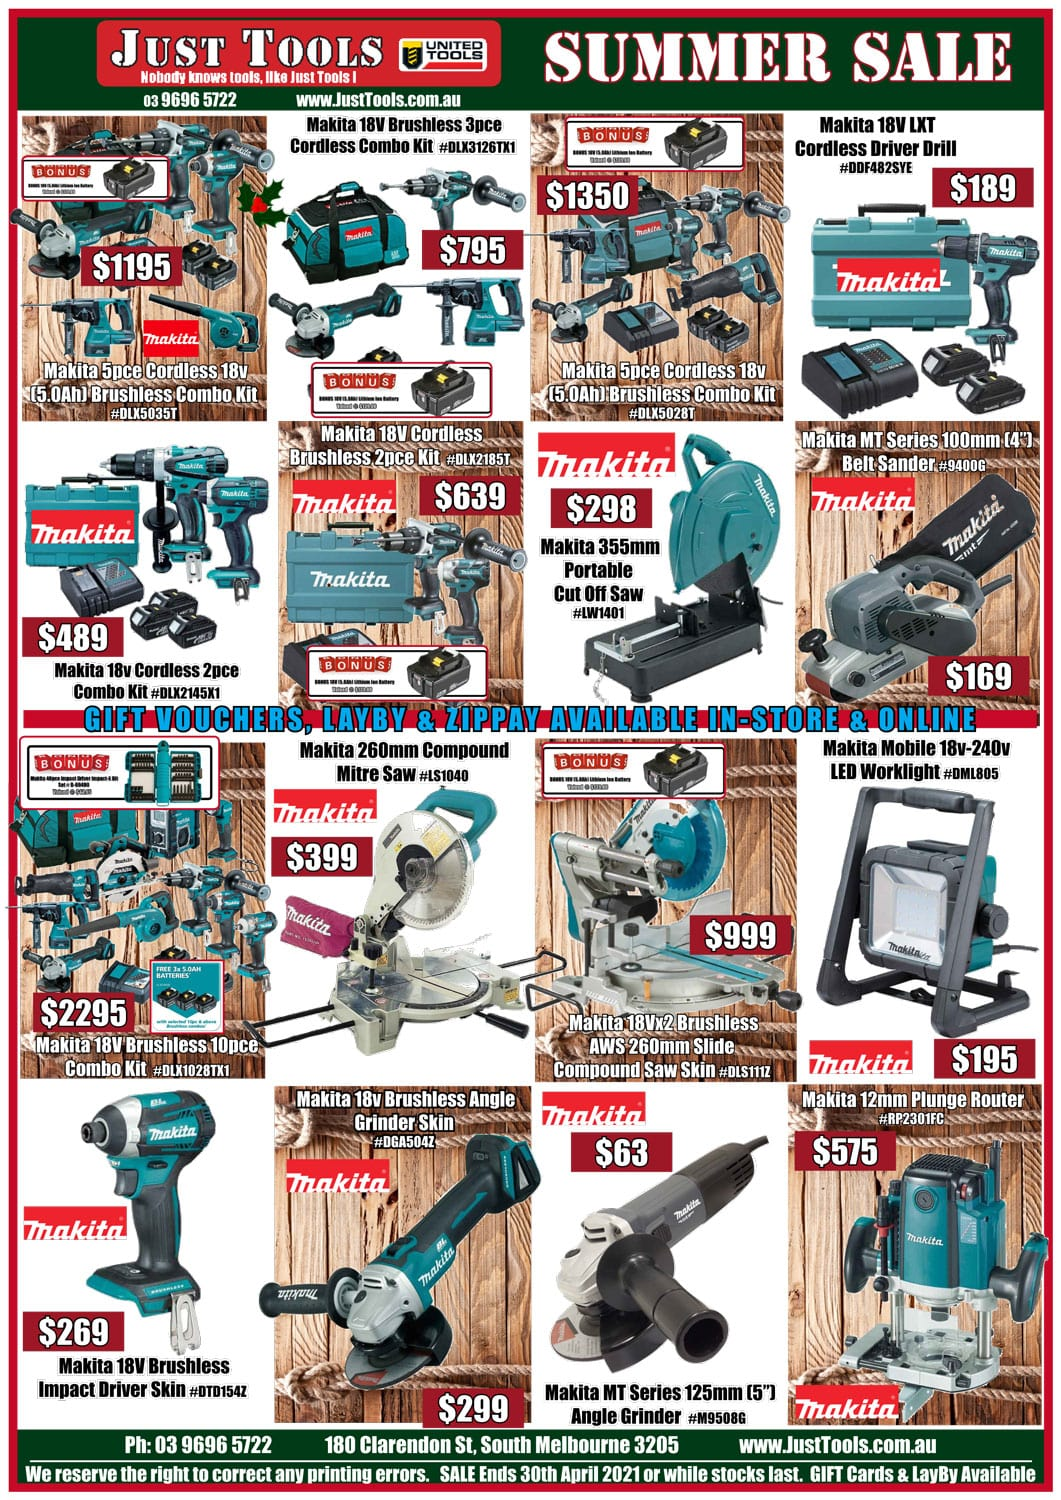 just-tools-summer-sale-page-6b-min.jpg